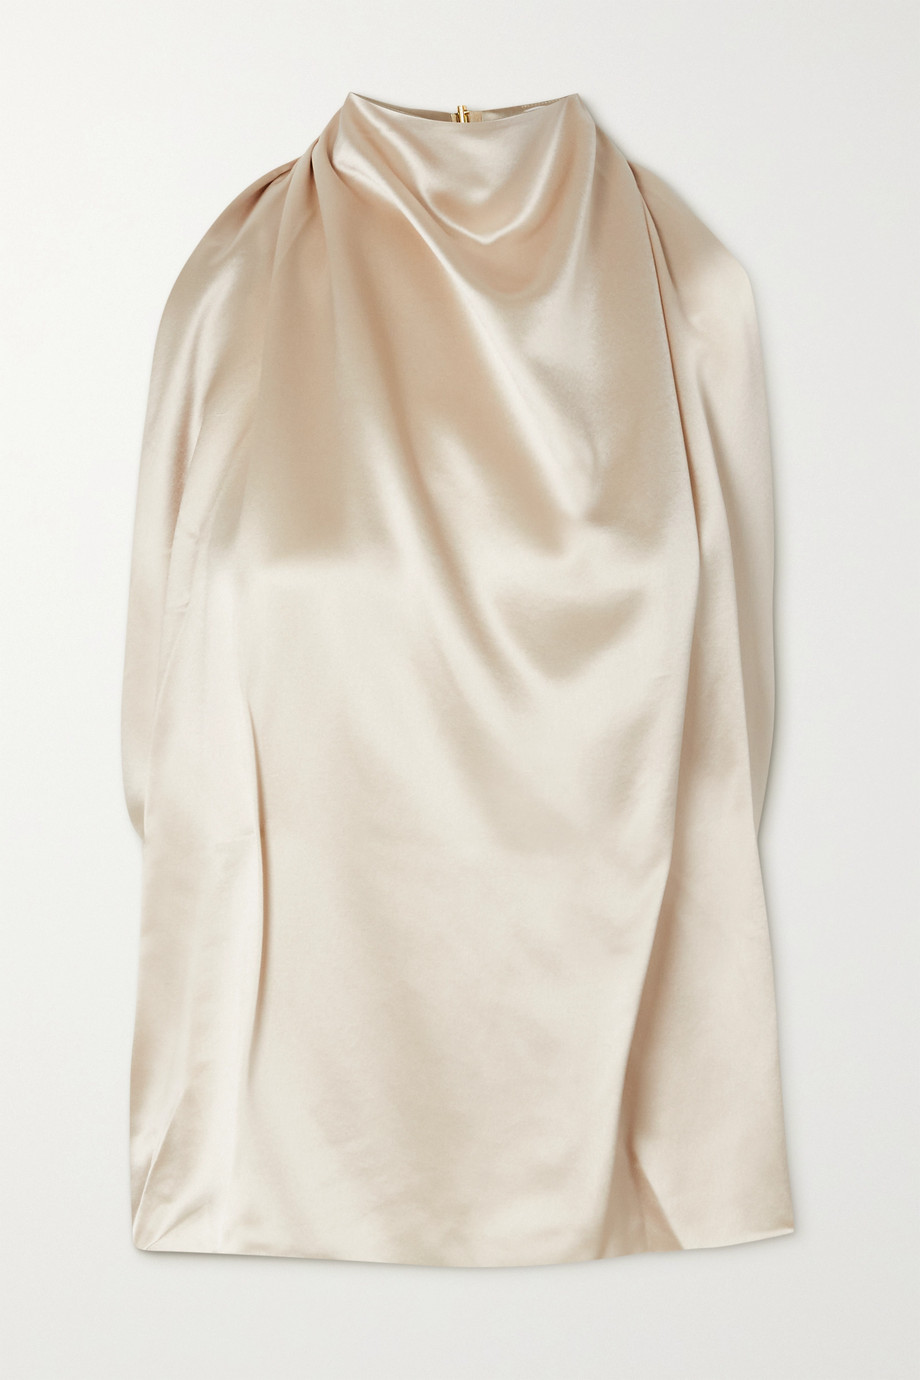 16ARLINGTON Tana draped satin halterneck top